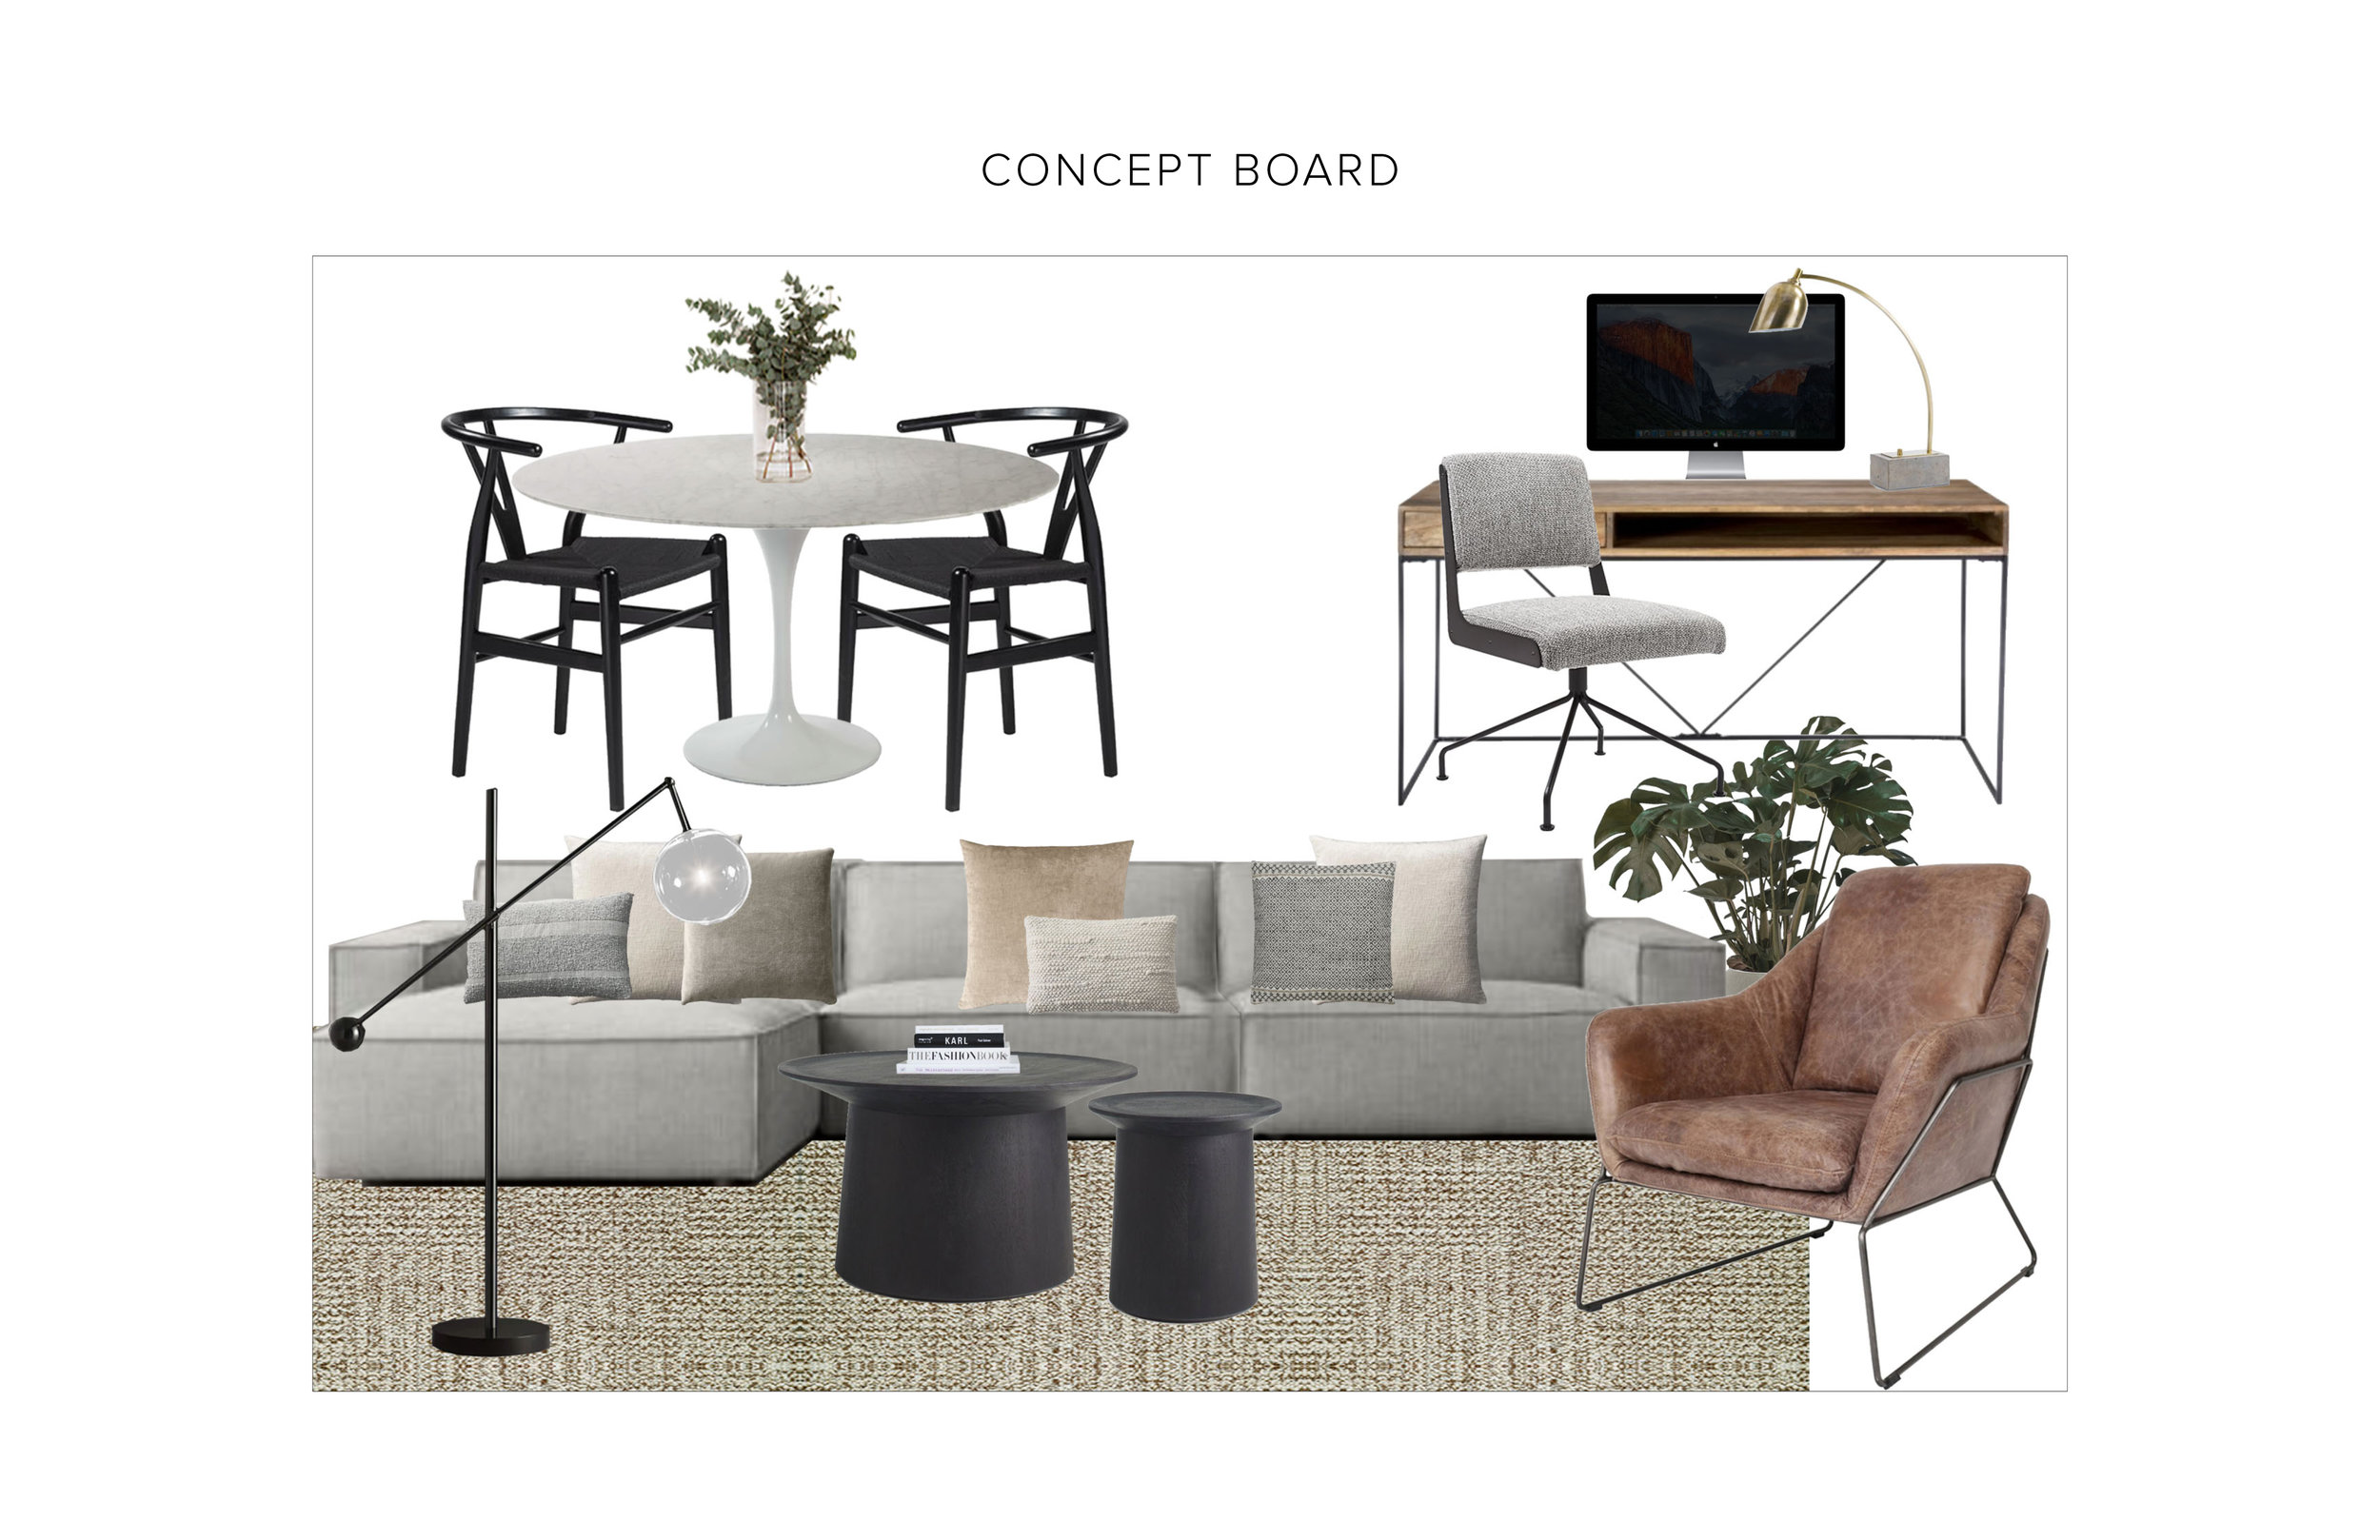 MW Living Room Final Concept Board.jpg